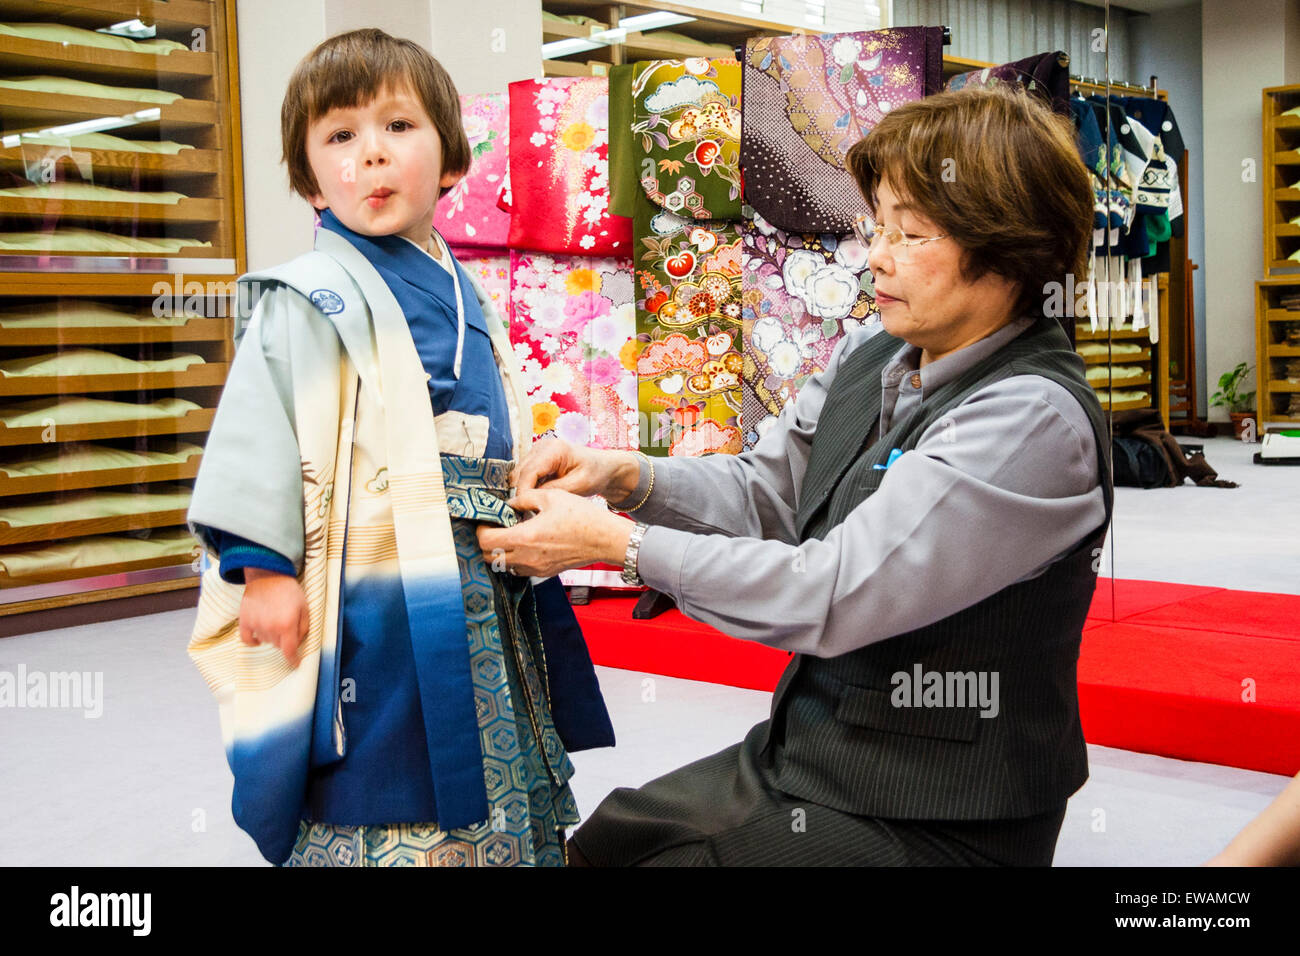 Interior With Japanese Mature Woman Dressing Young Mixed Race